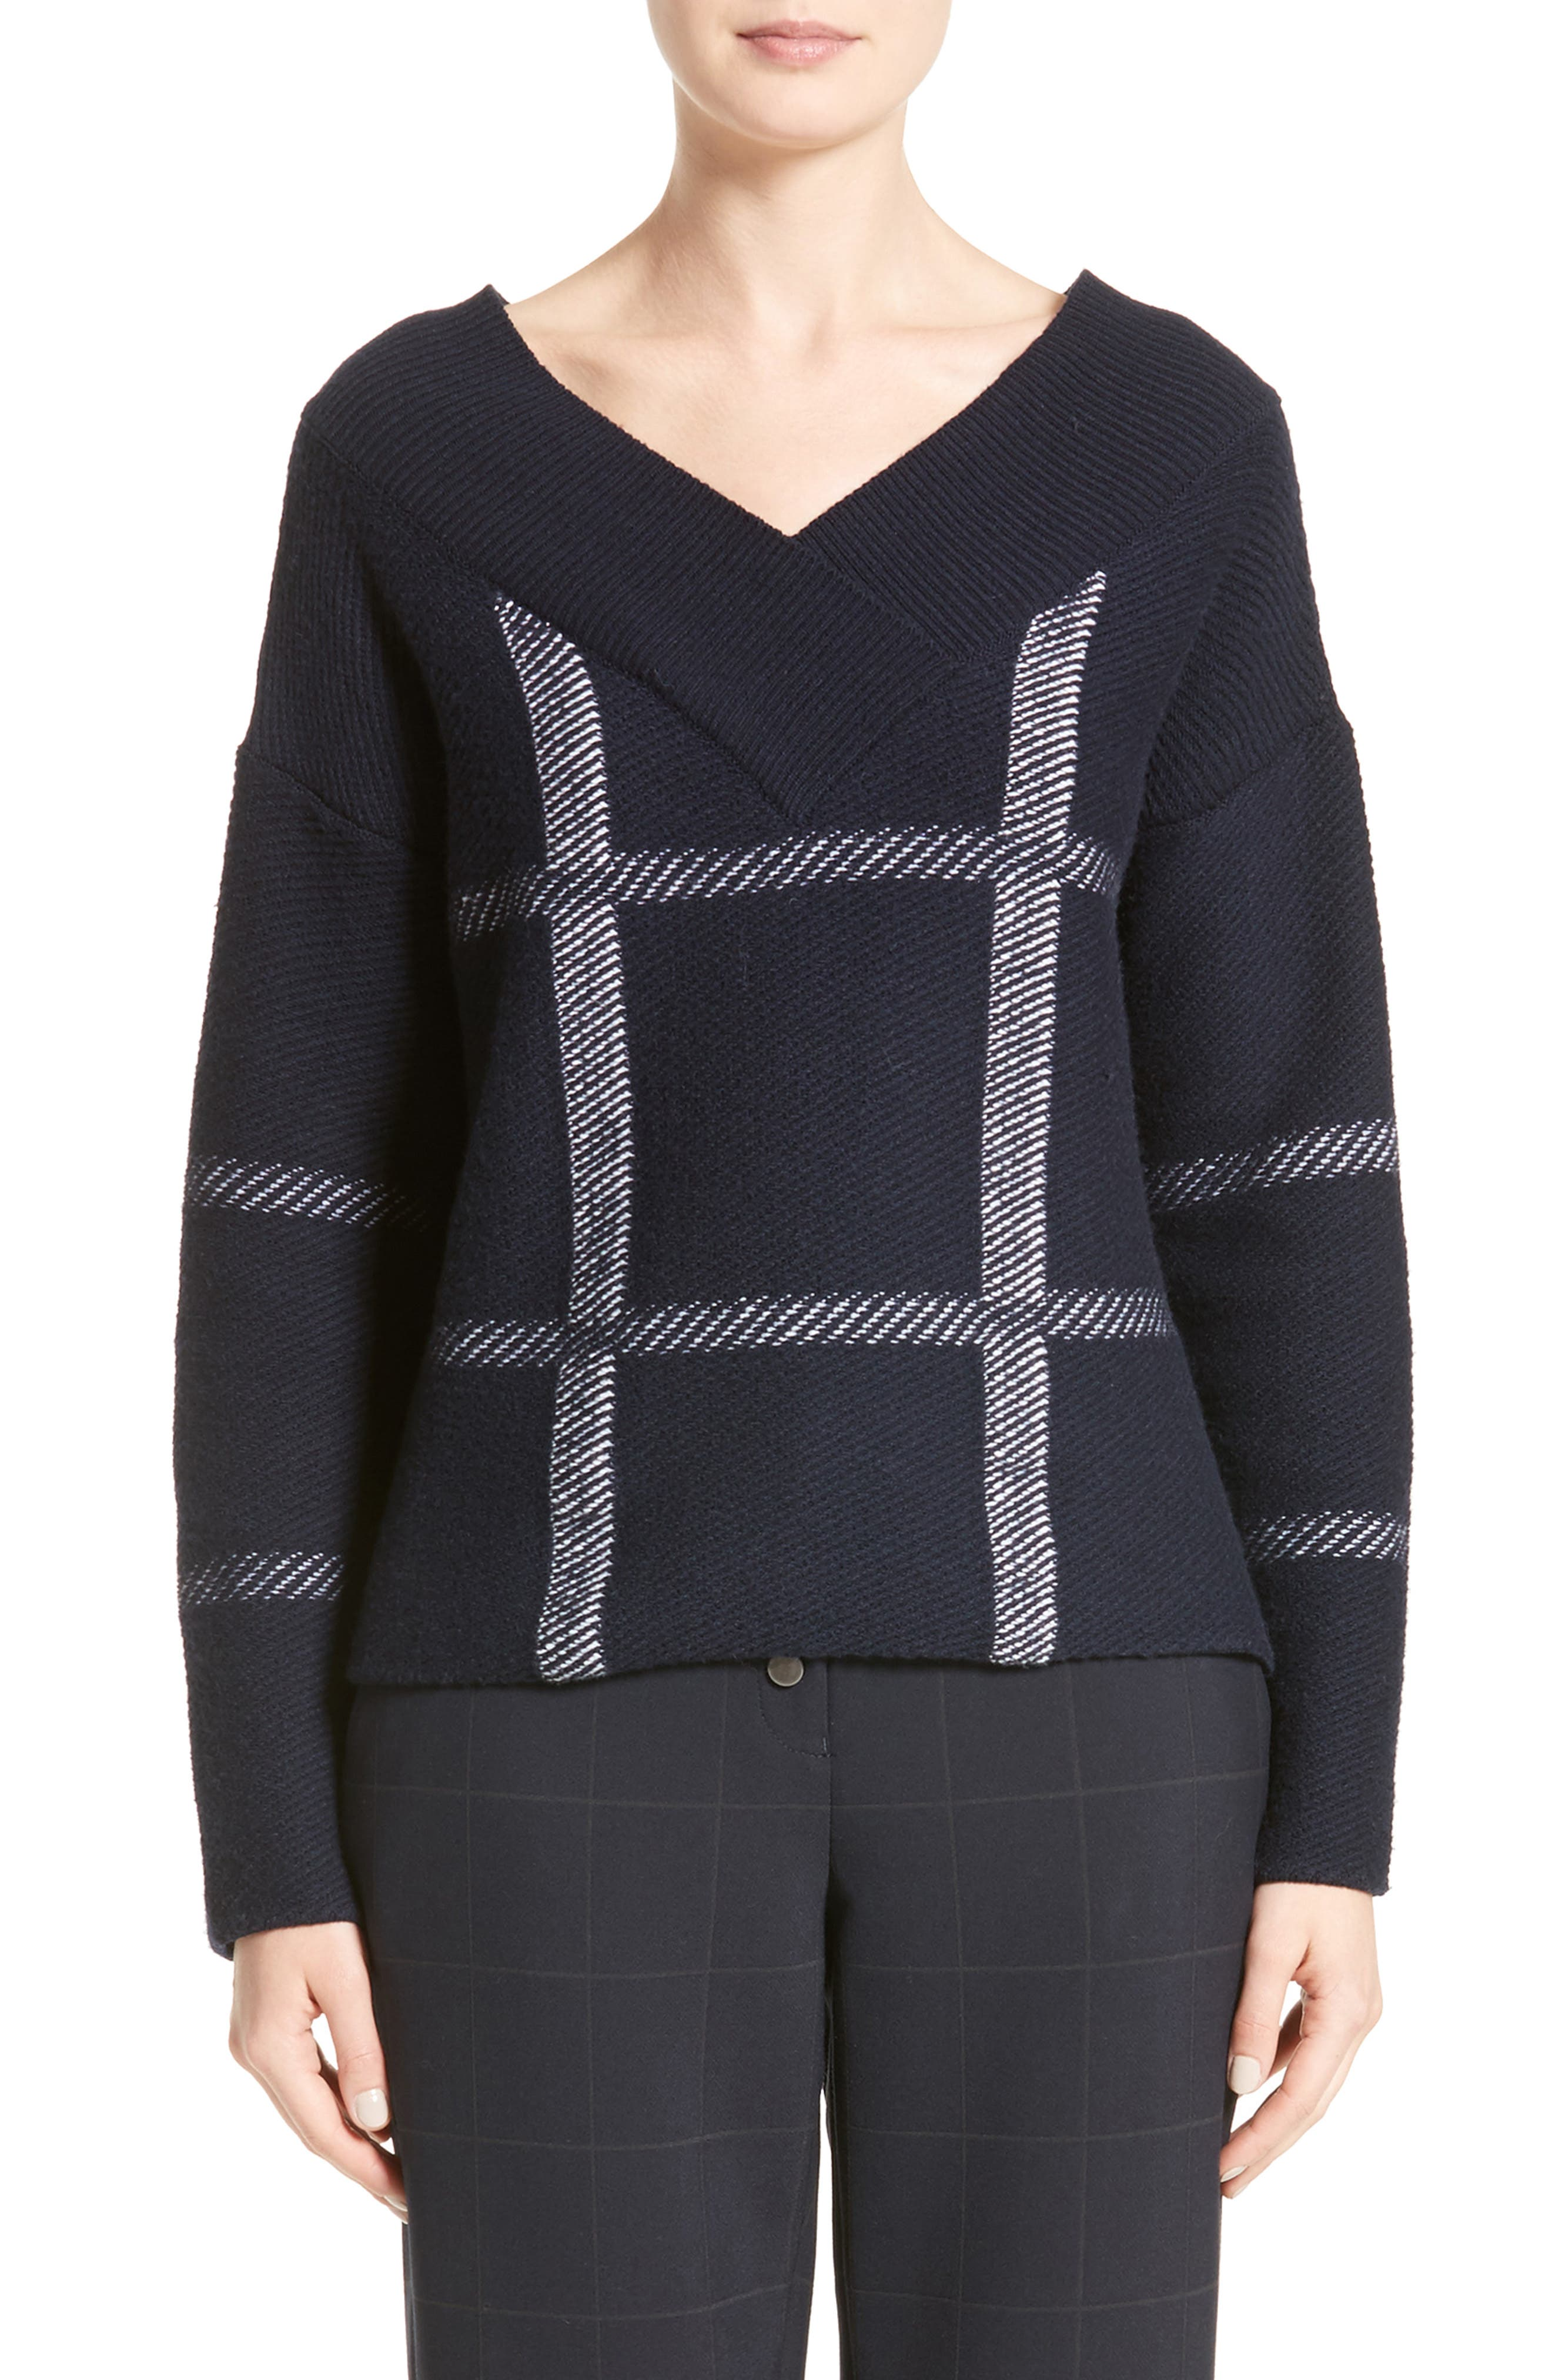 Windowpane Wool & Cashmere Sweater,                             Main thumbnail 1, color,                             Navy Multi